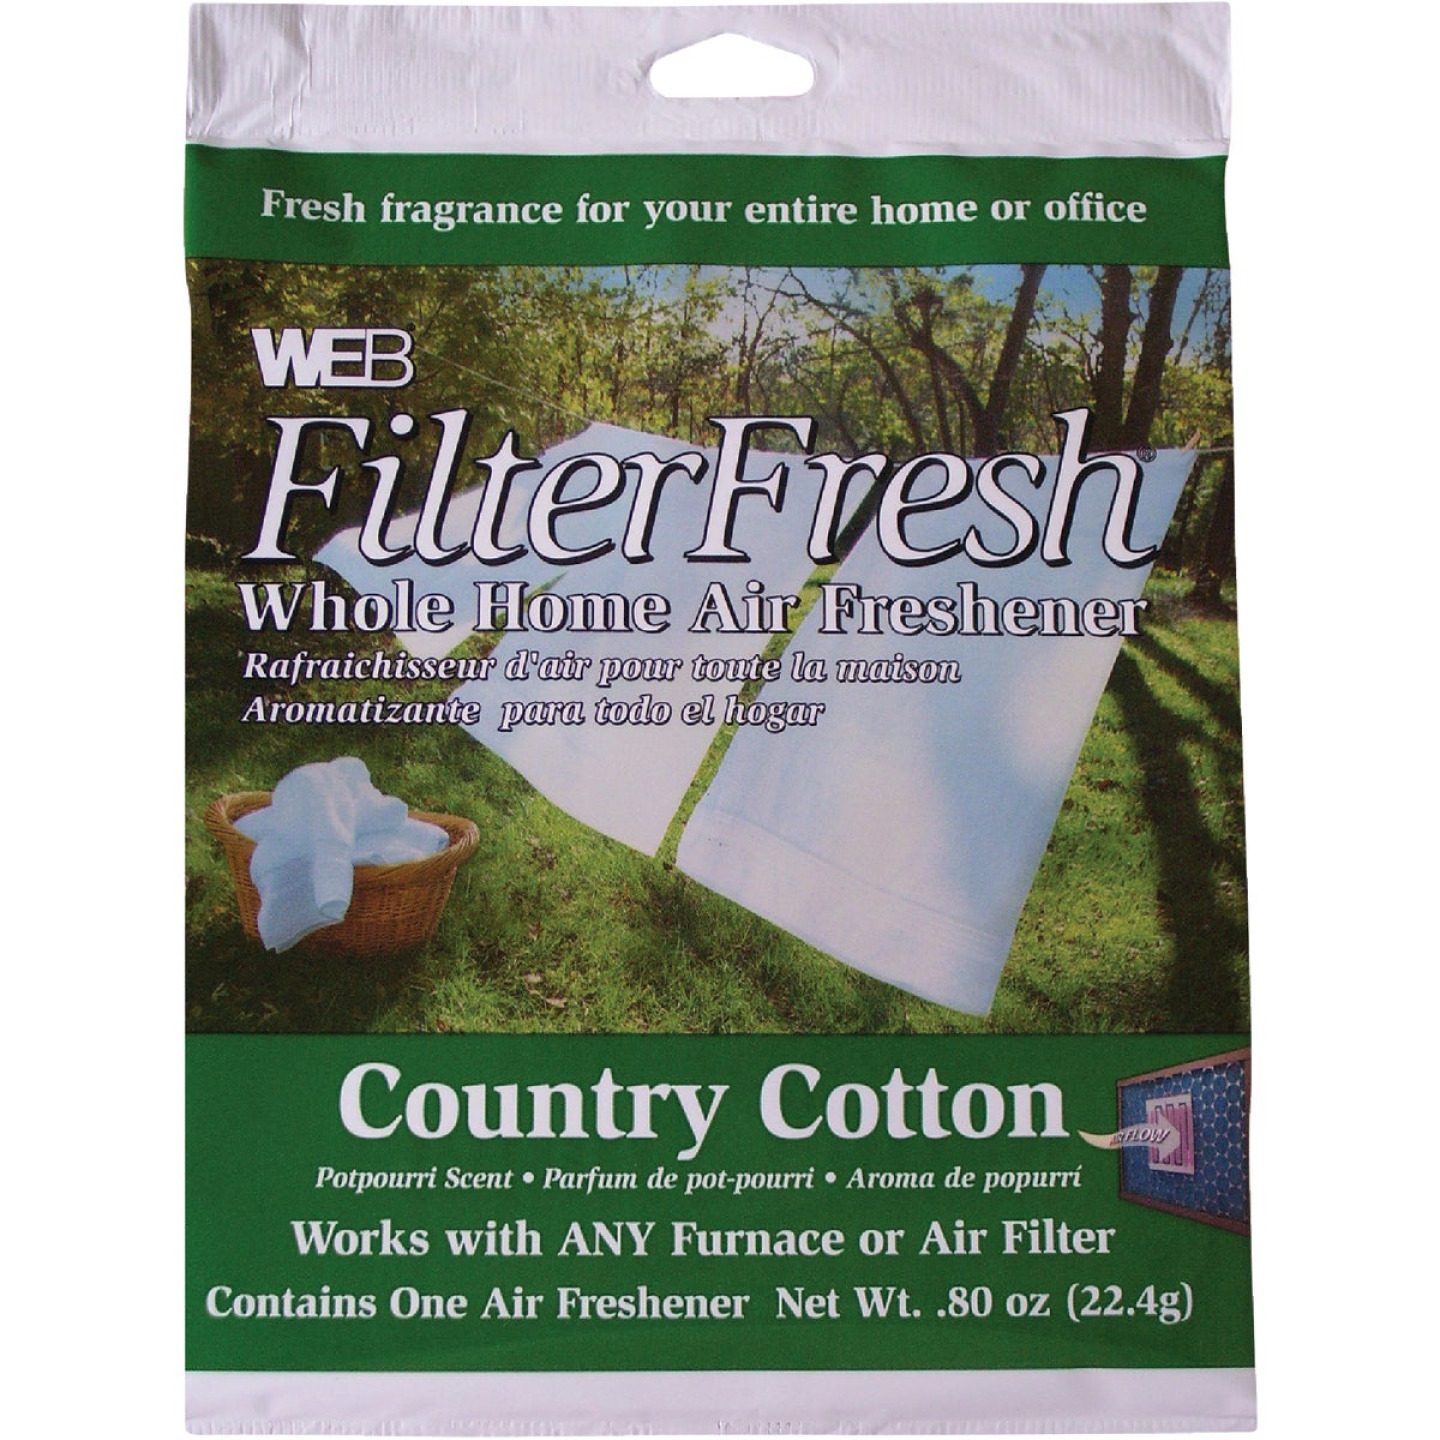 Web FilterFresh Furnace Air Freshener, Country Cotton Image 1